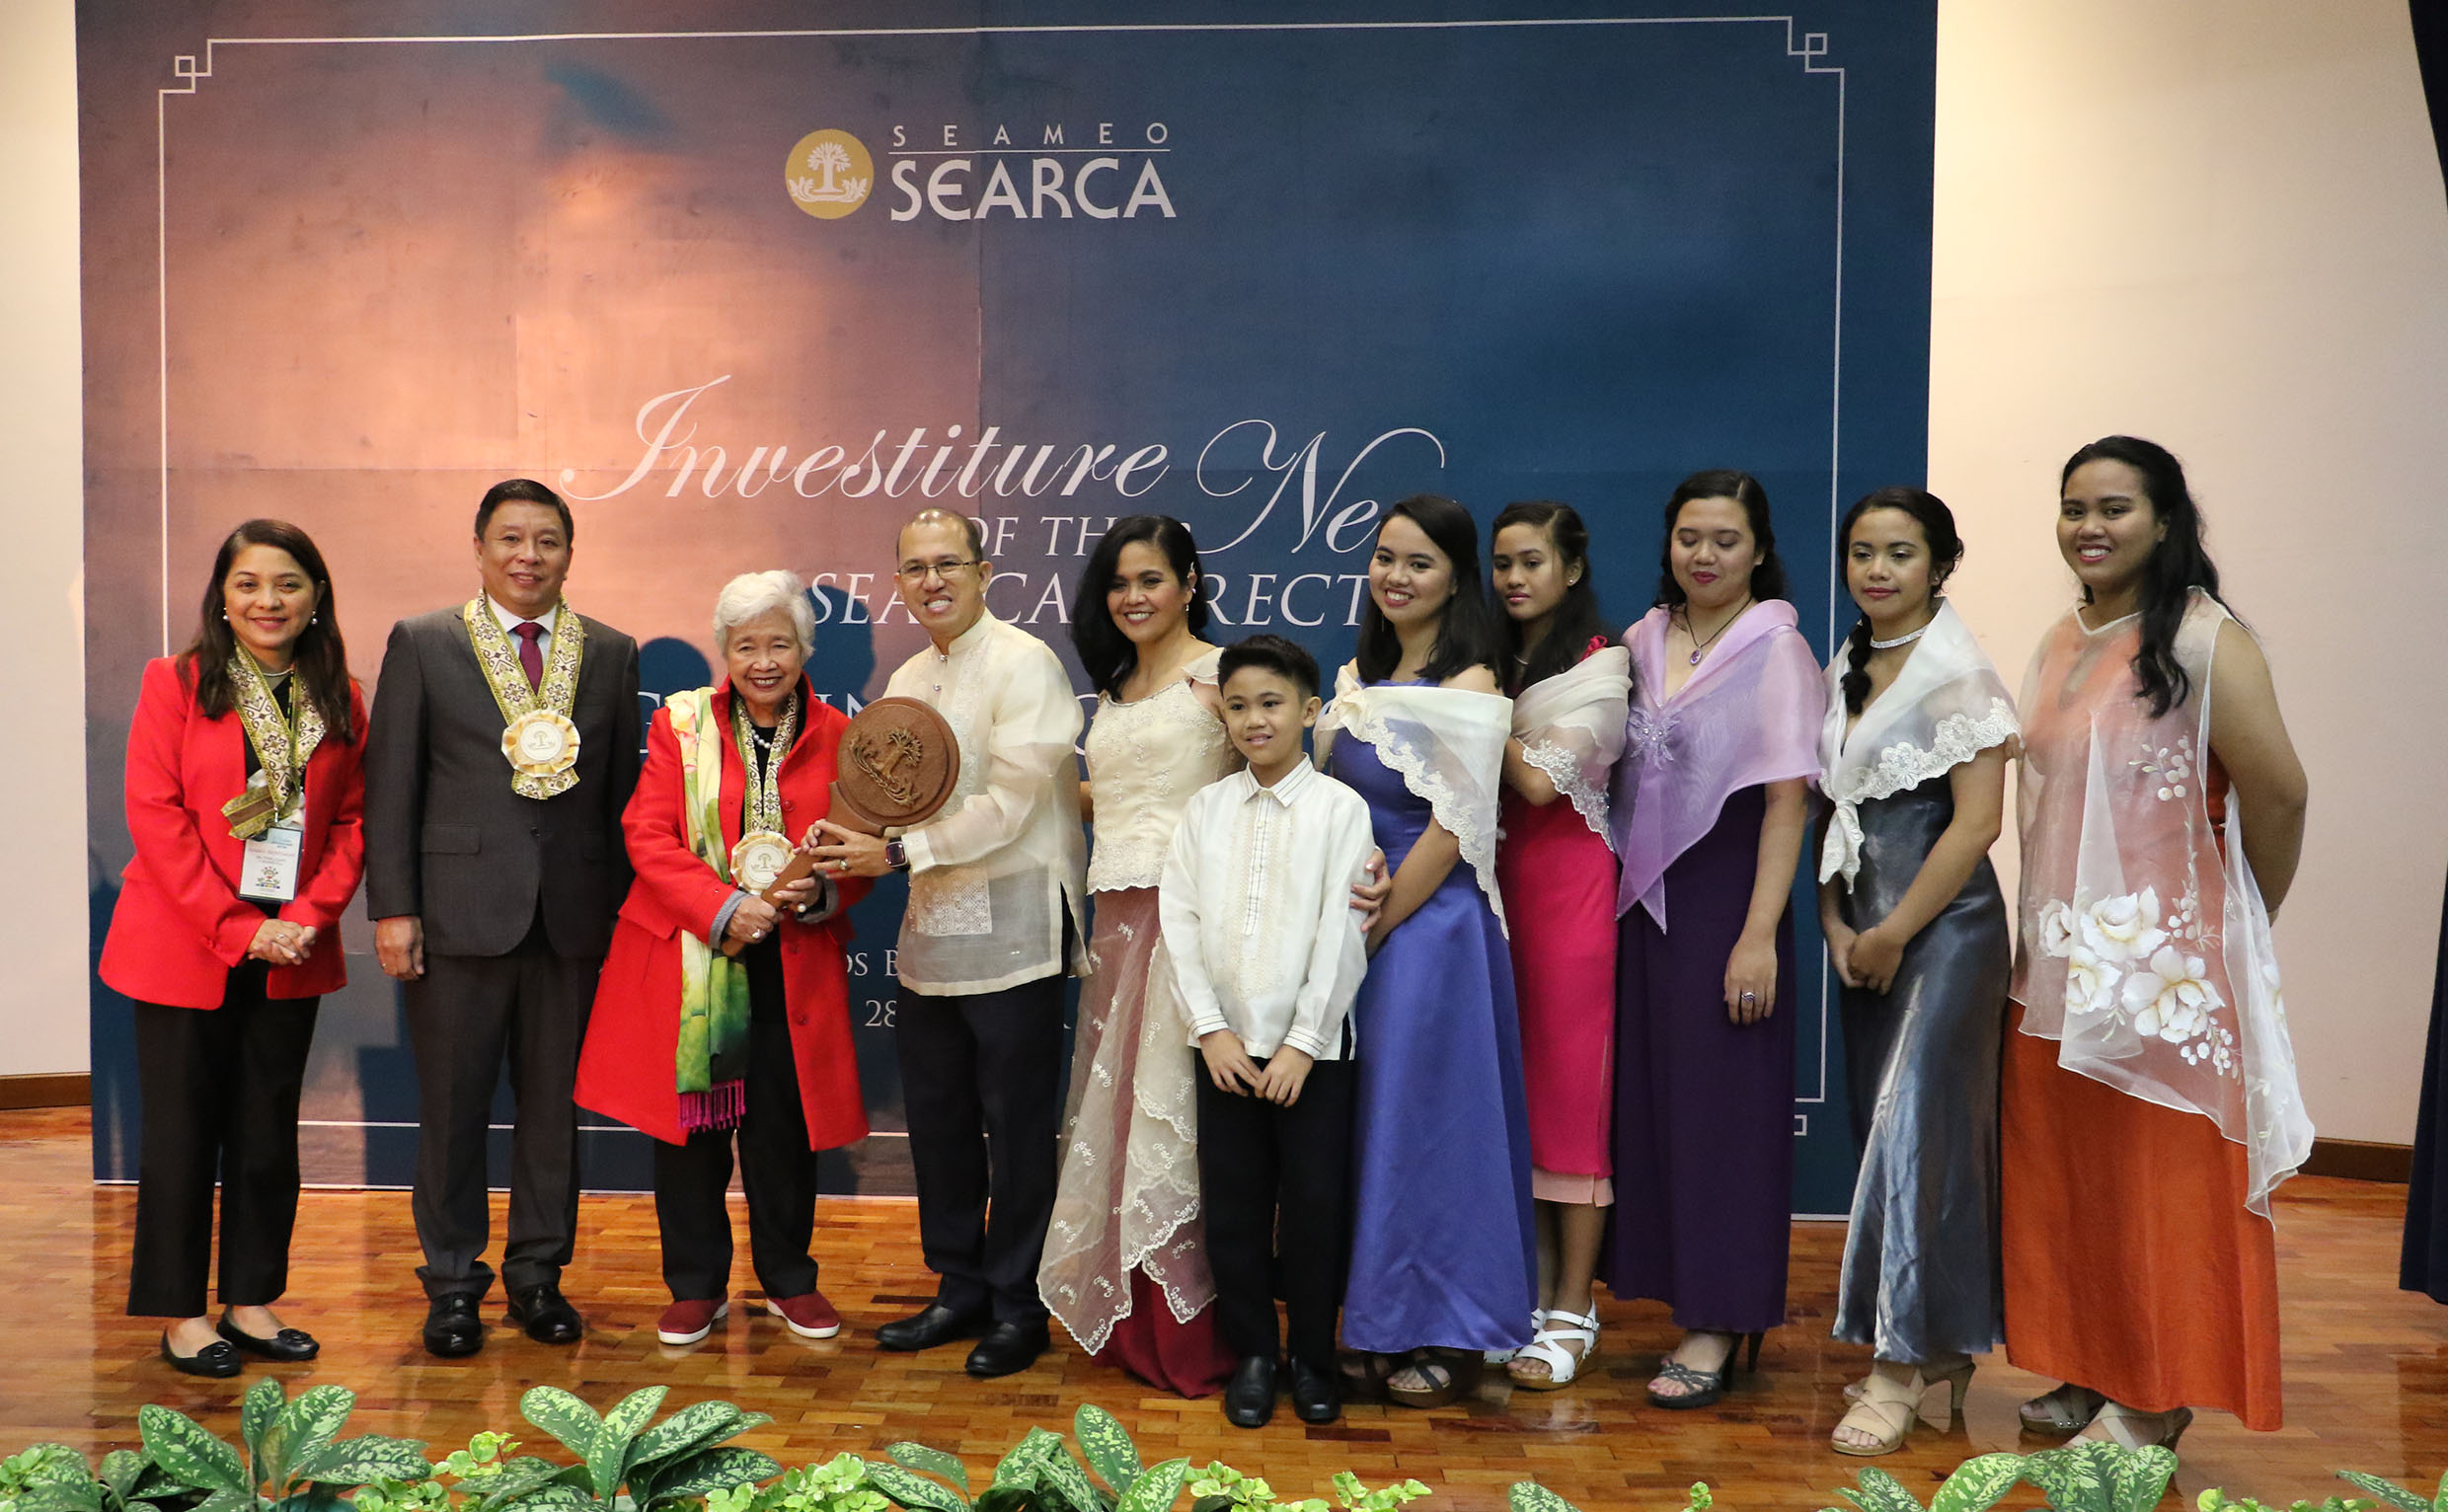 Dr. Glenn Gregorio is formally invested as SEARCA director